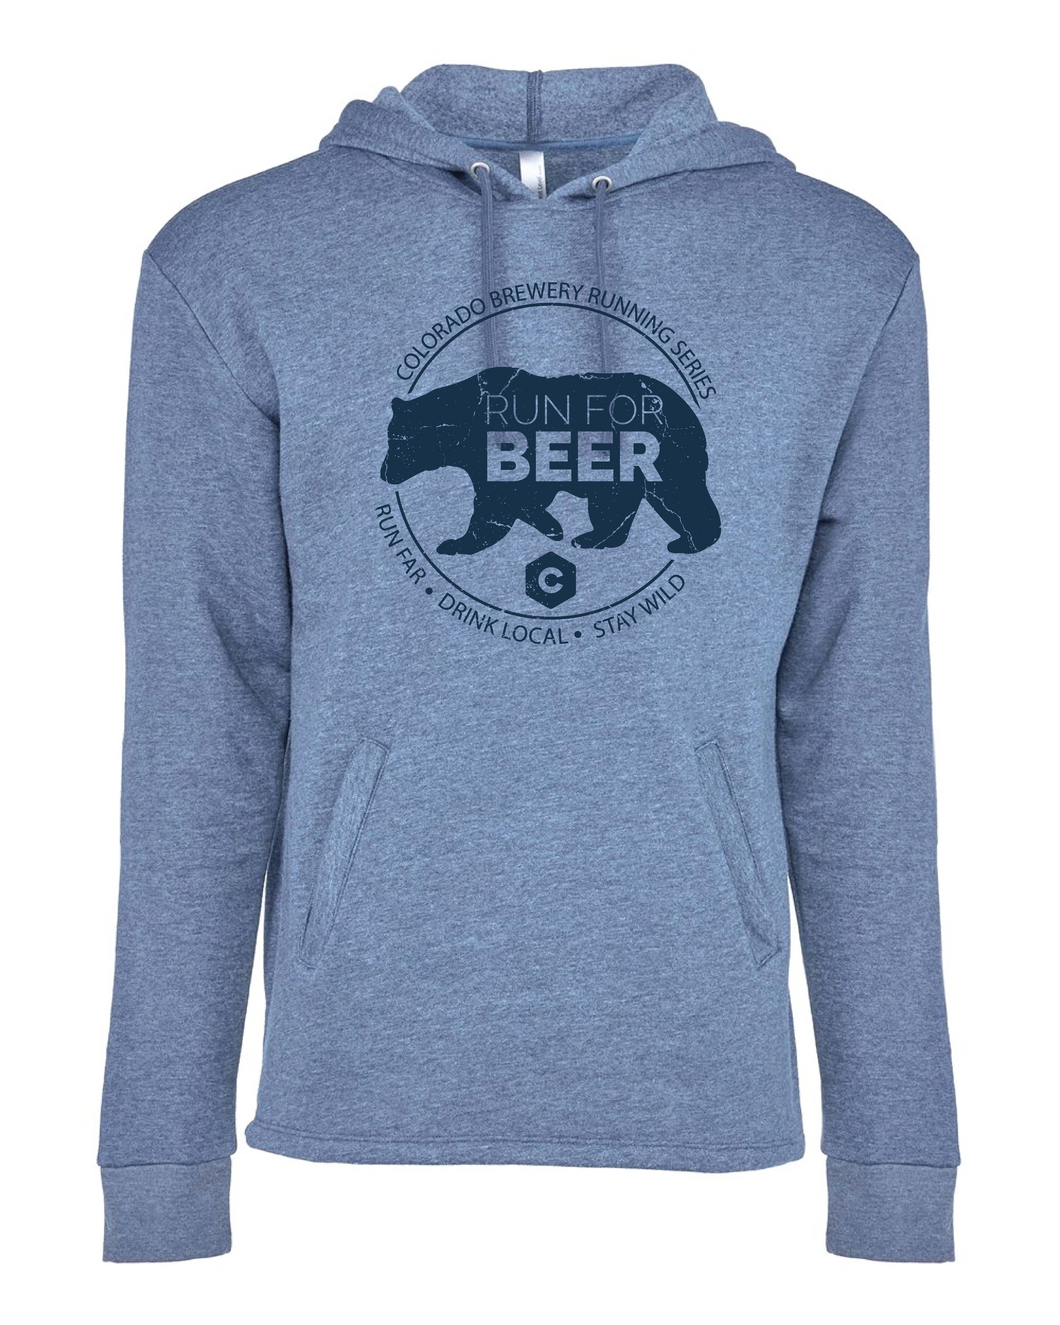 Run For... Bear - Hoodie - Unisex - Heather Bay Blue